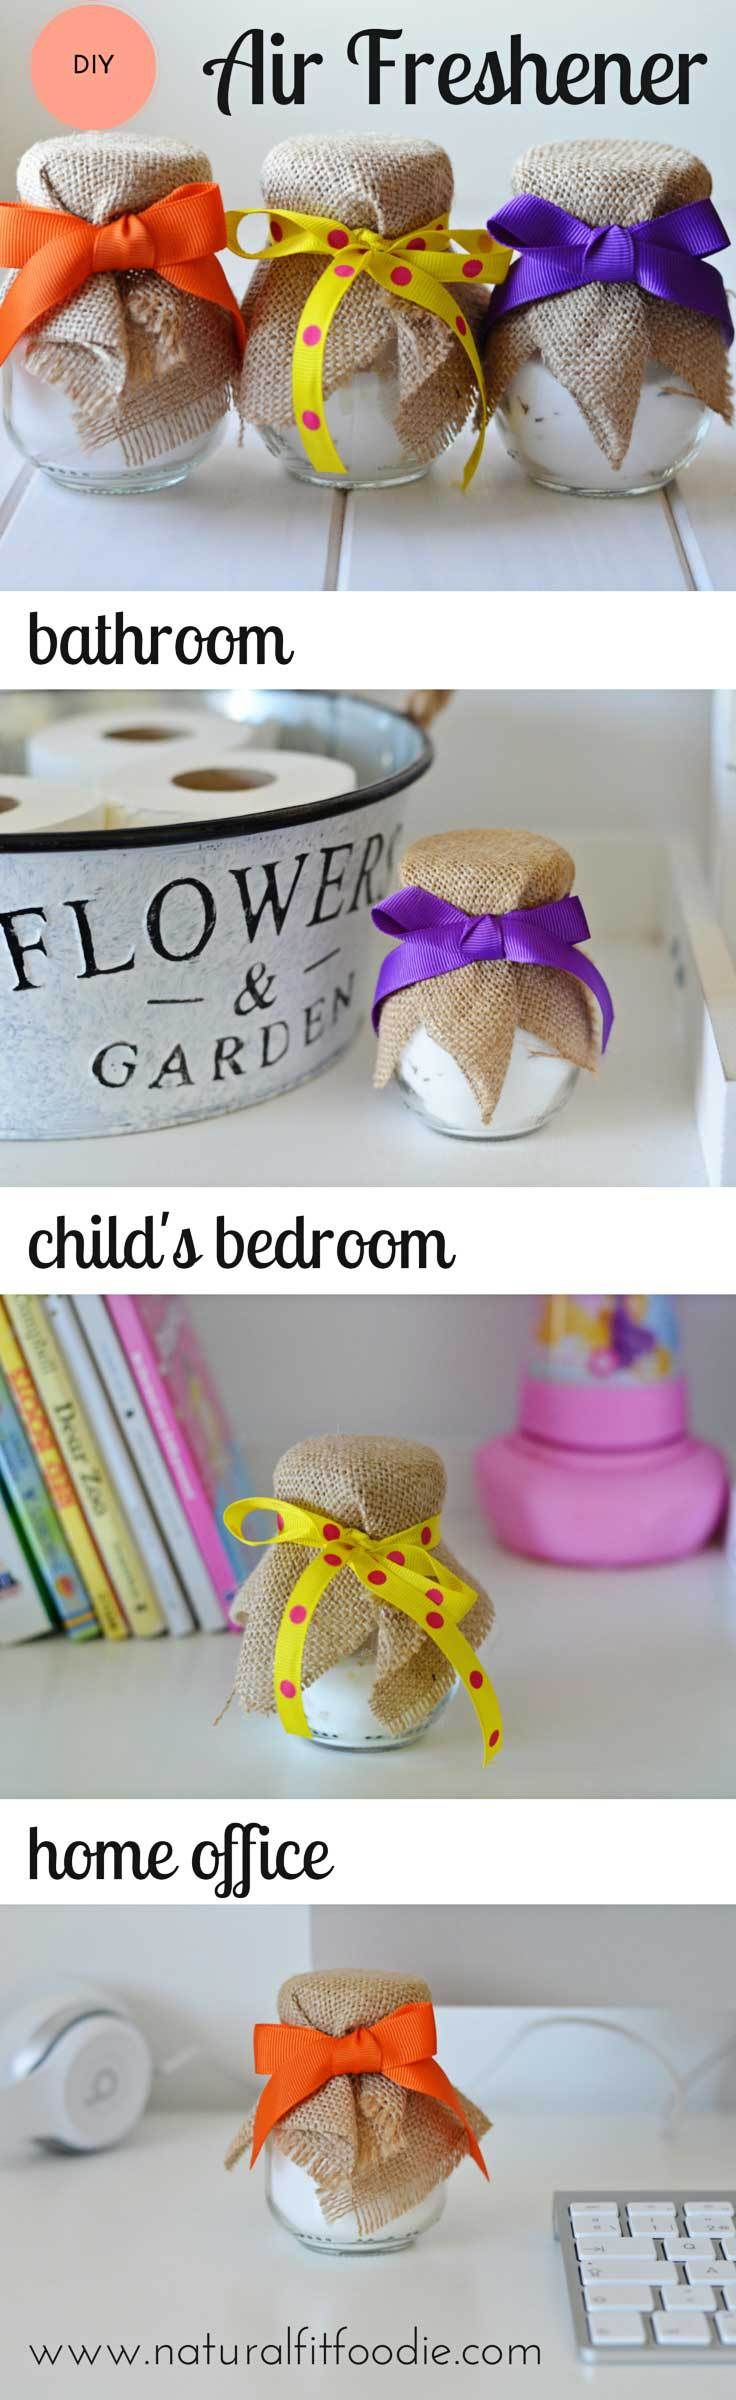 25+ best ideas about Air freshener for home on Pinterest | Natural ...